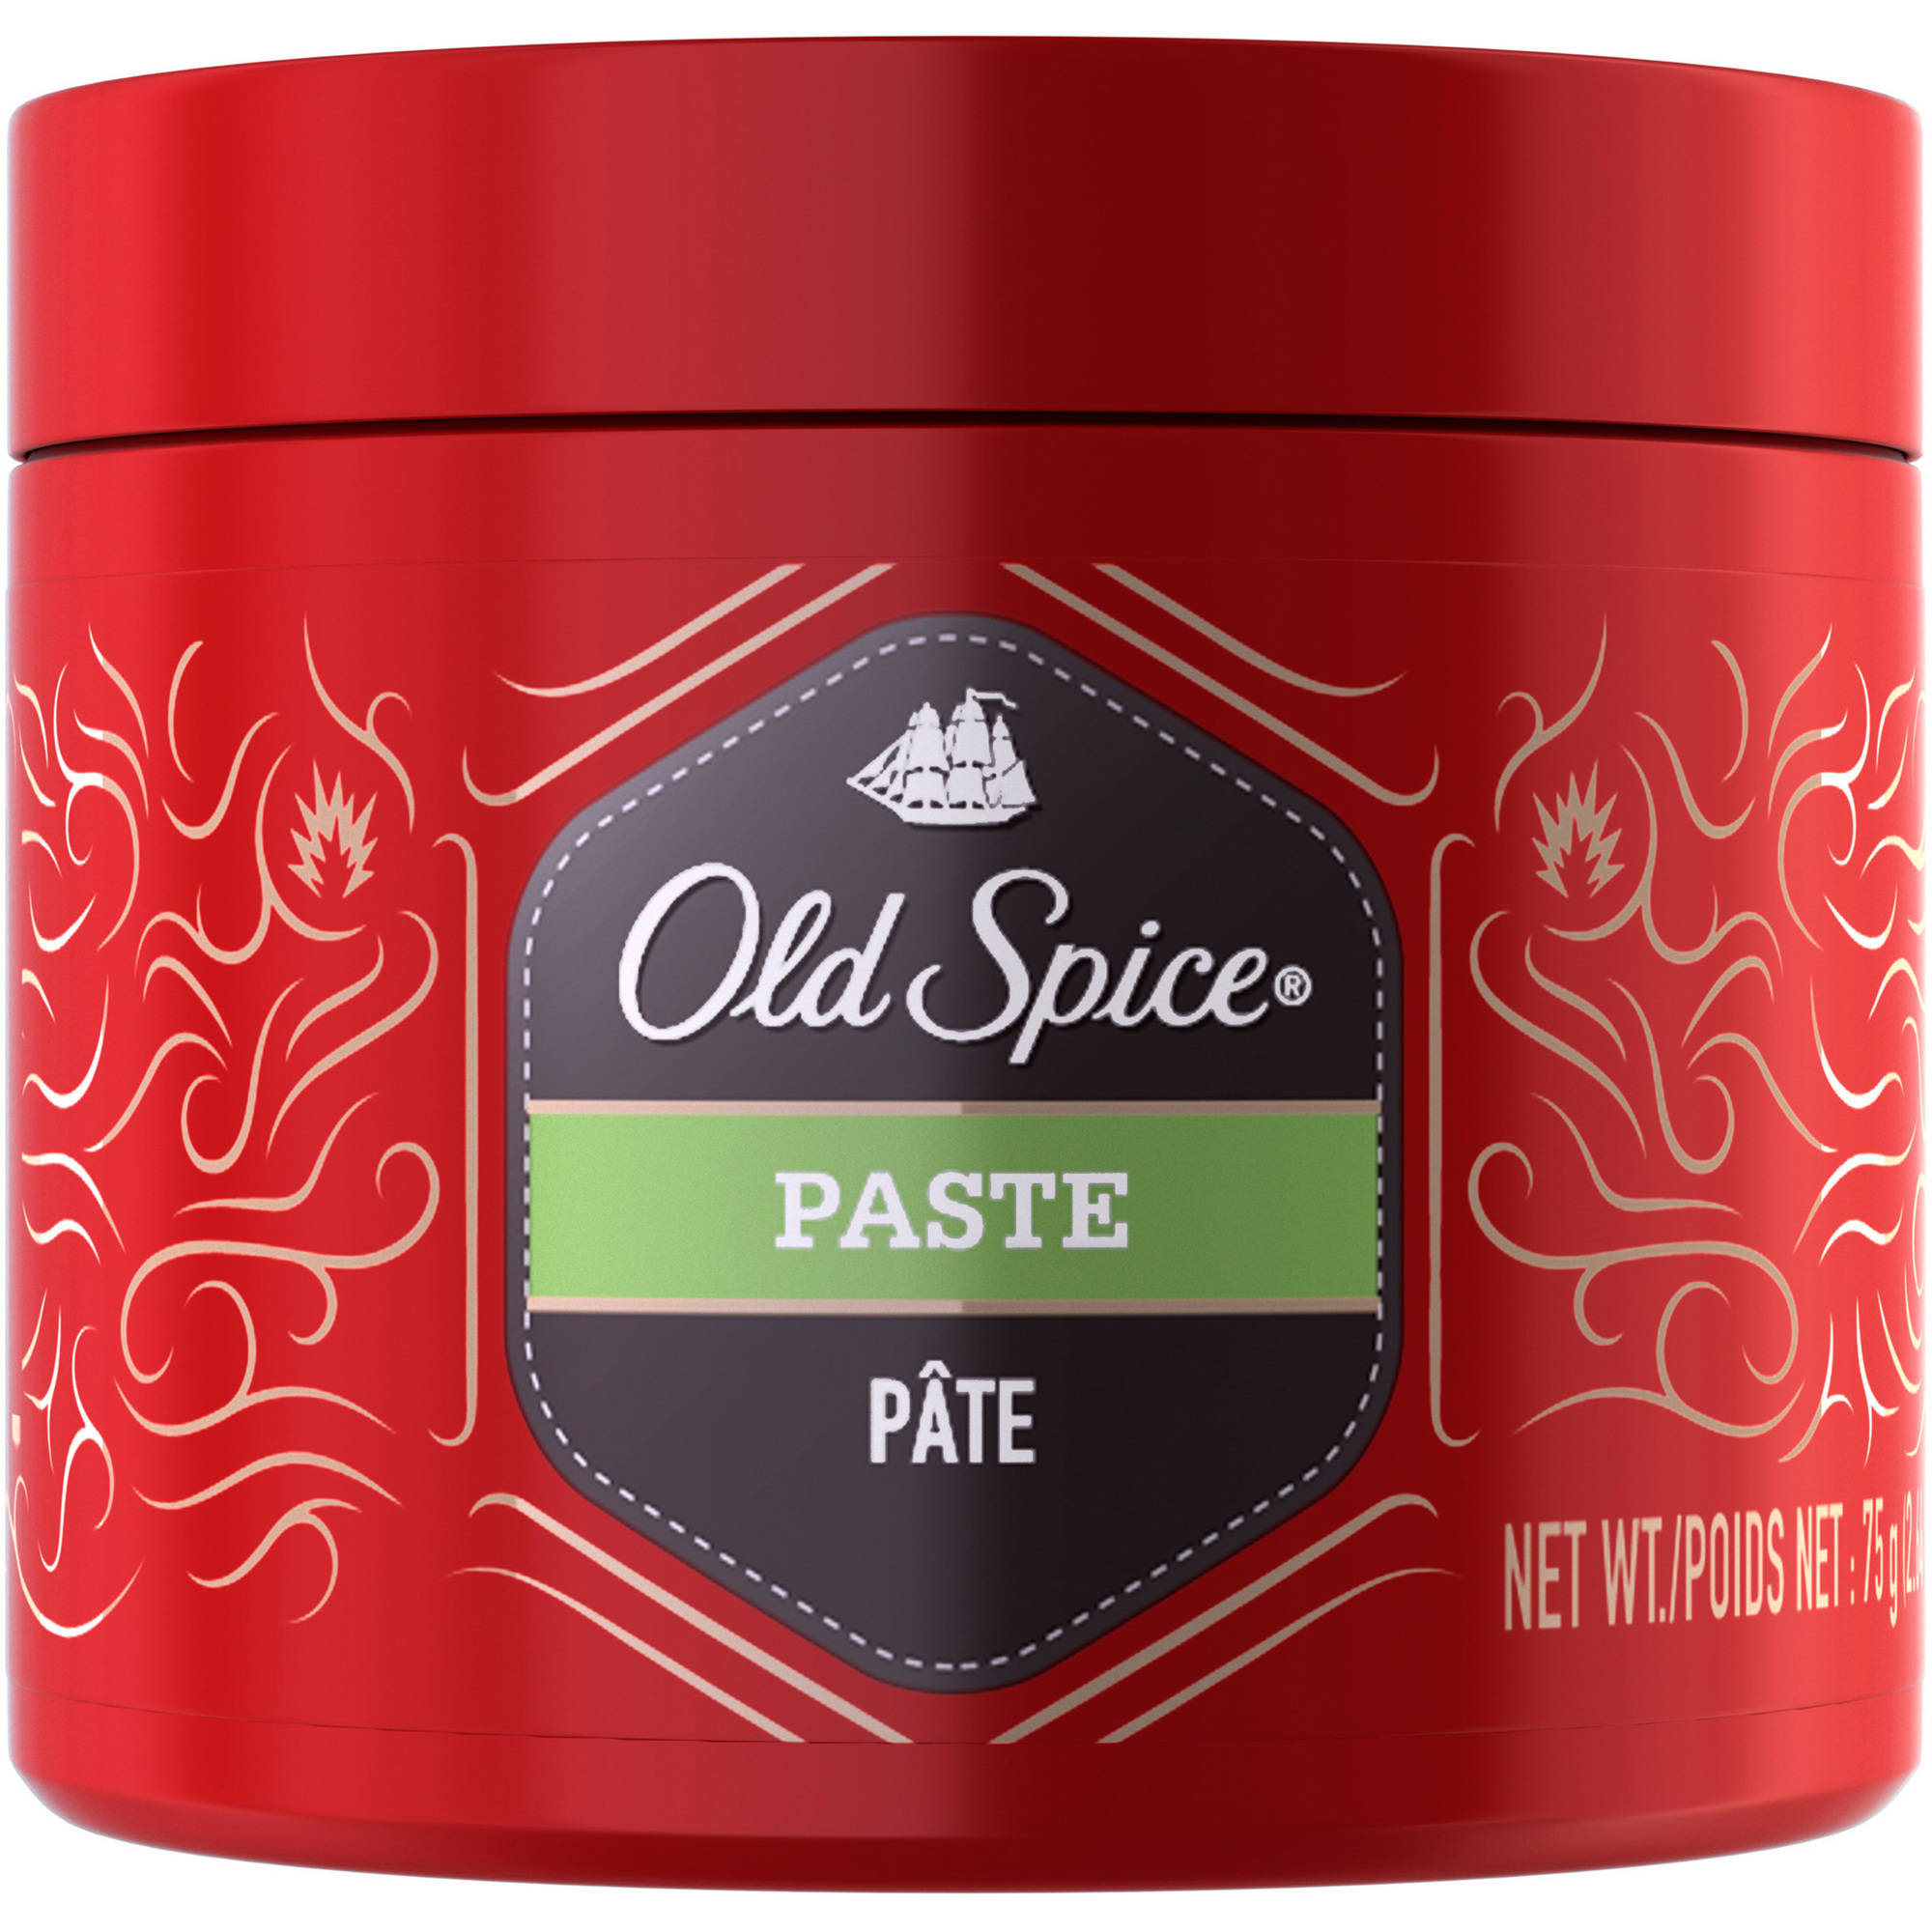 Old Spice Unruly Paste, 2.64 oz